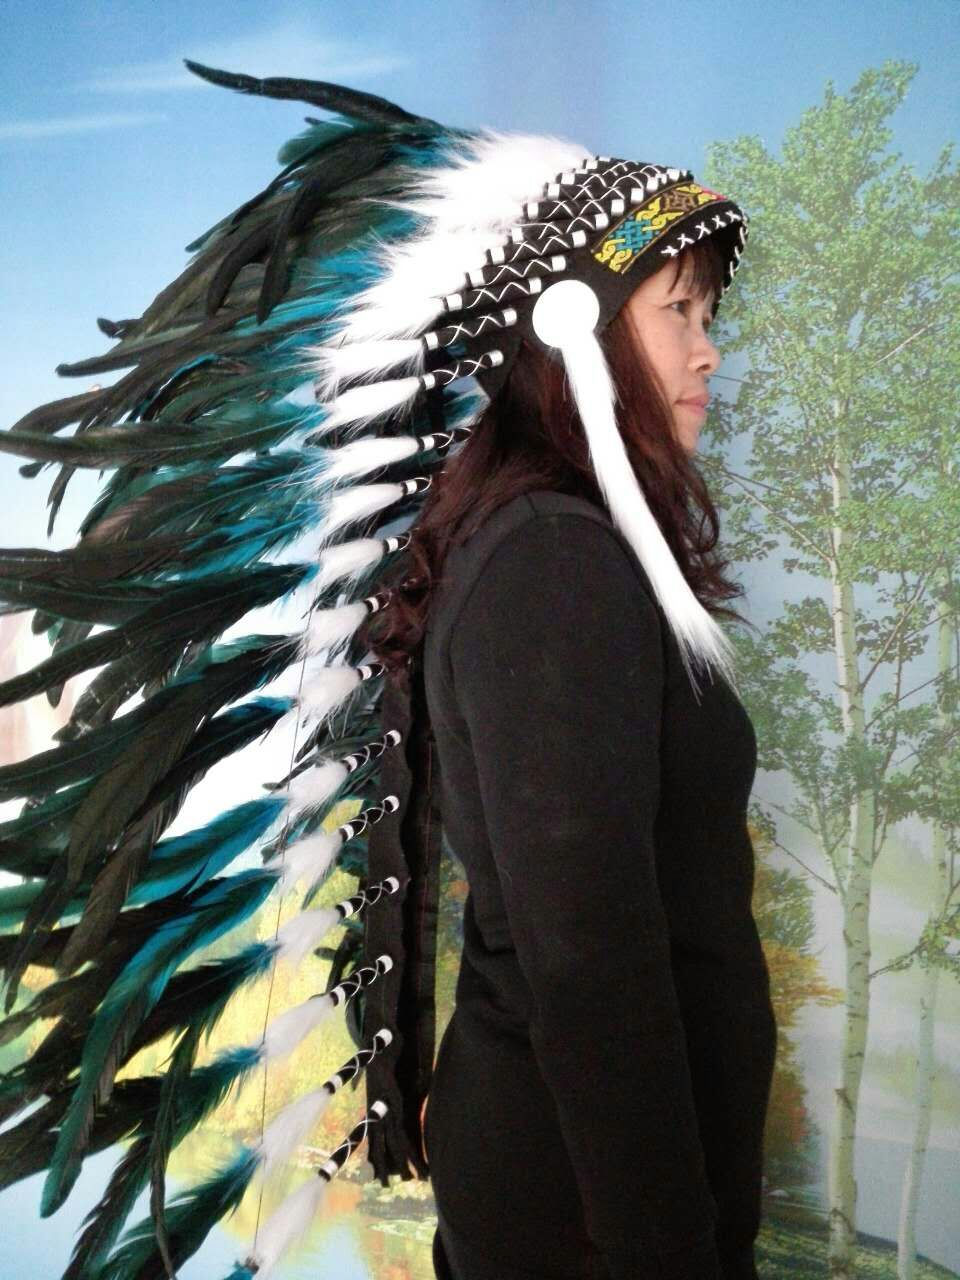 36 Inch Turquoise Feather Headdress Feather Headpiece Feather Costume Feather Hat Party Supply